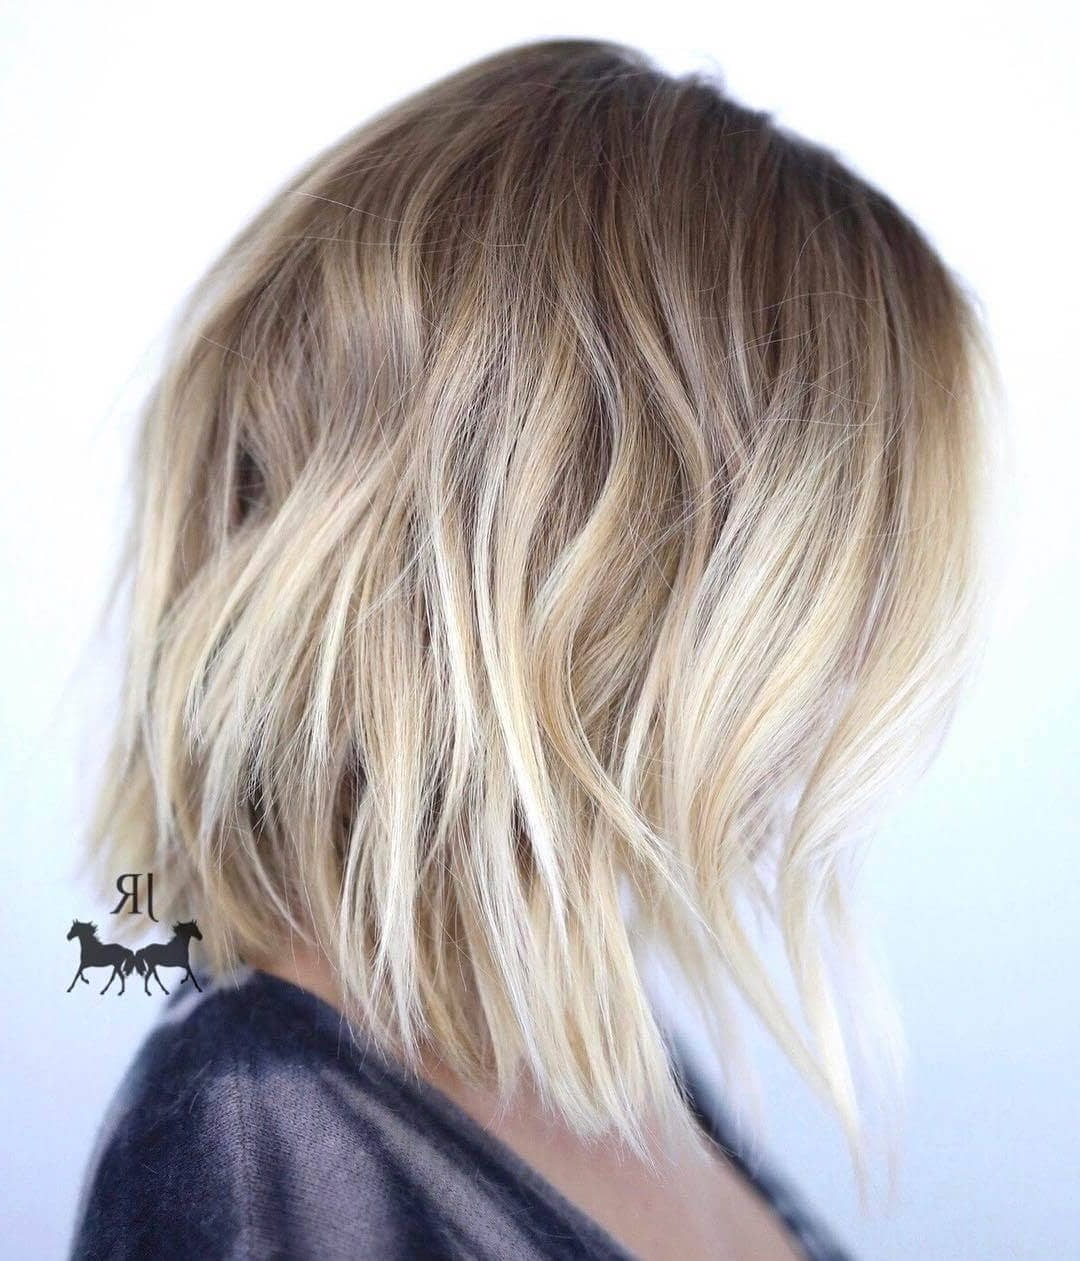 50 Fresh Short Blonde Hair Ideas To Update Your Style In 2018 Intended For White Blonde Bob Haircuts For Fine Hair (View 9 of 20)